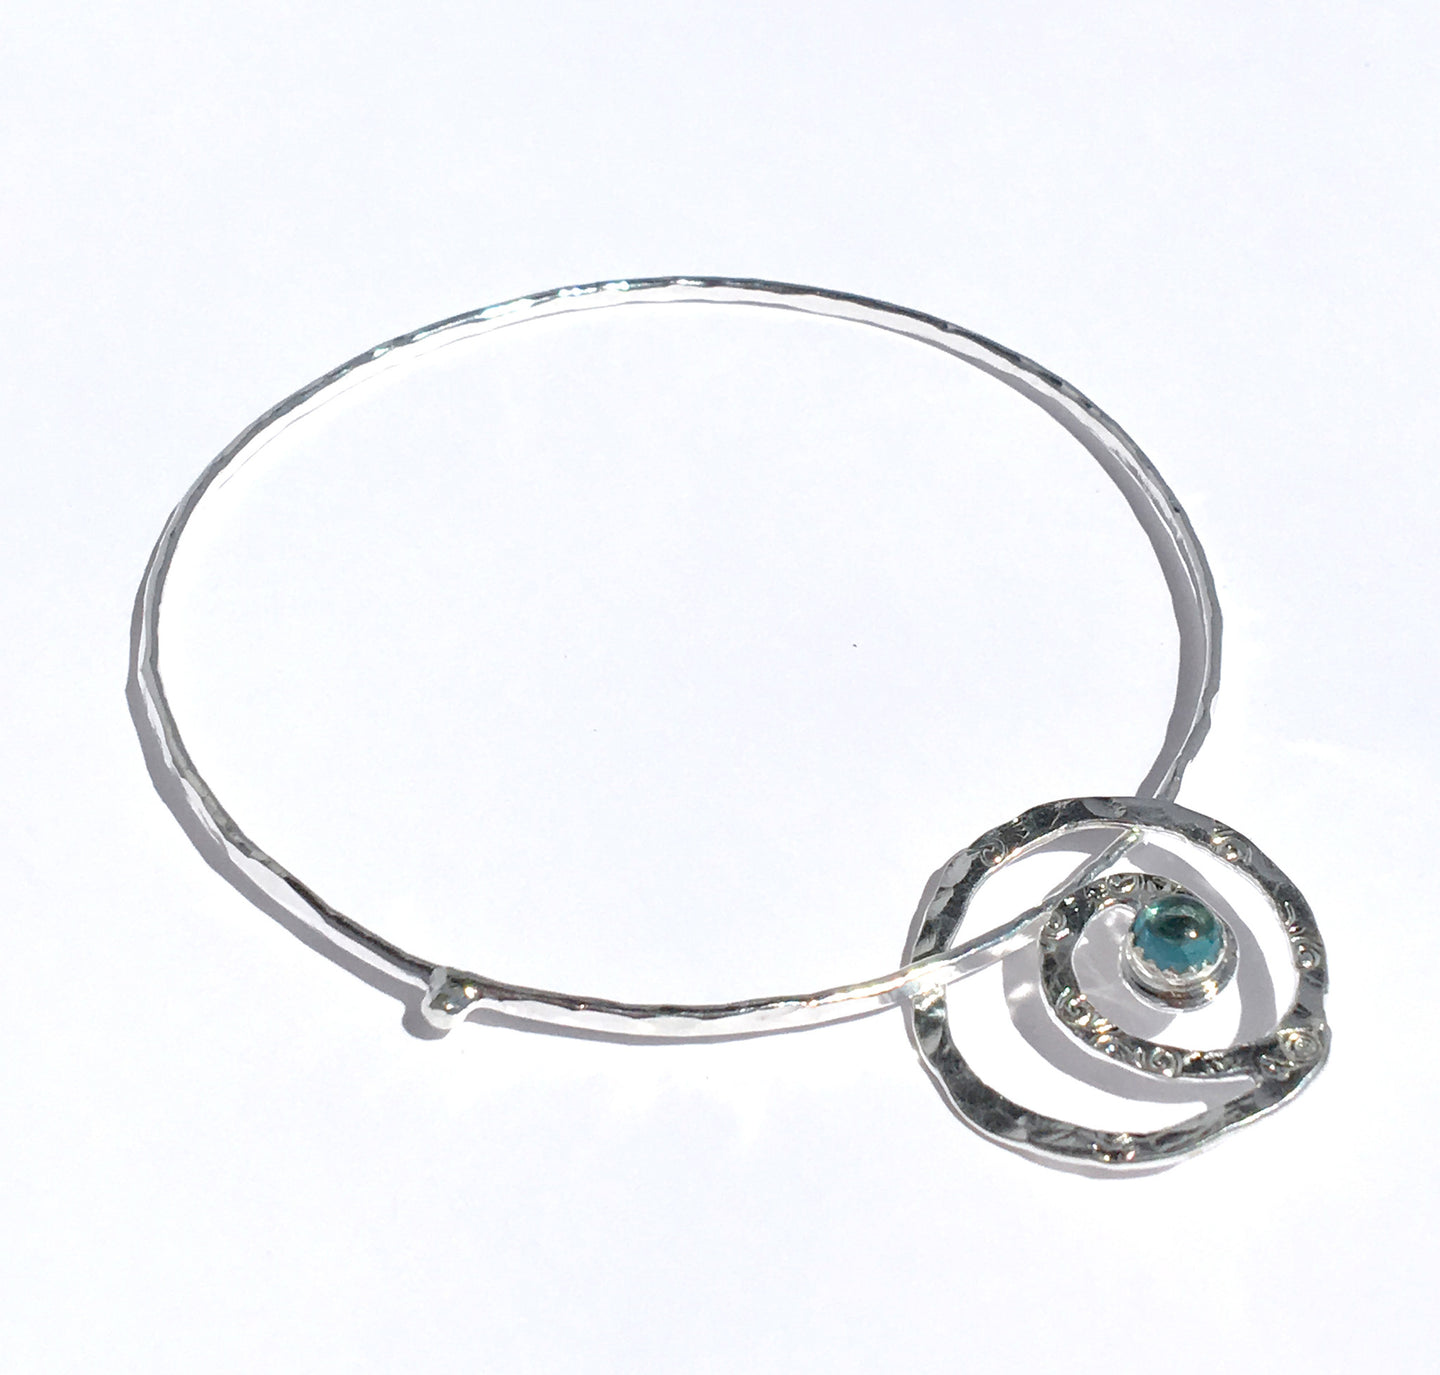 Sterling Spiral of Life & Transformation Bangle with Gem